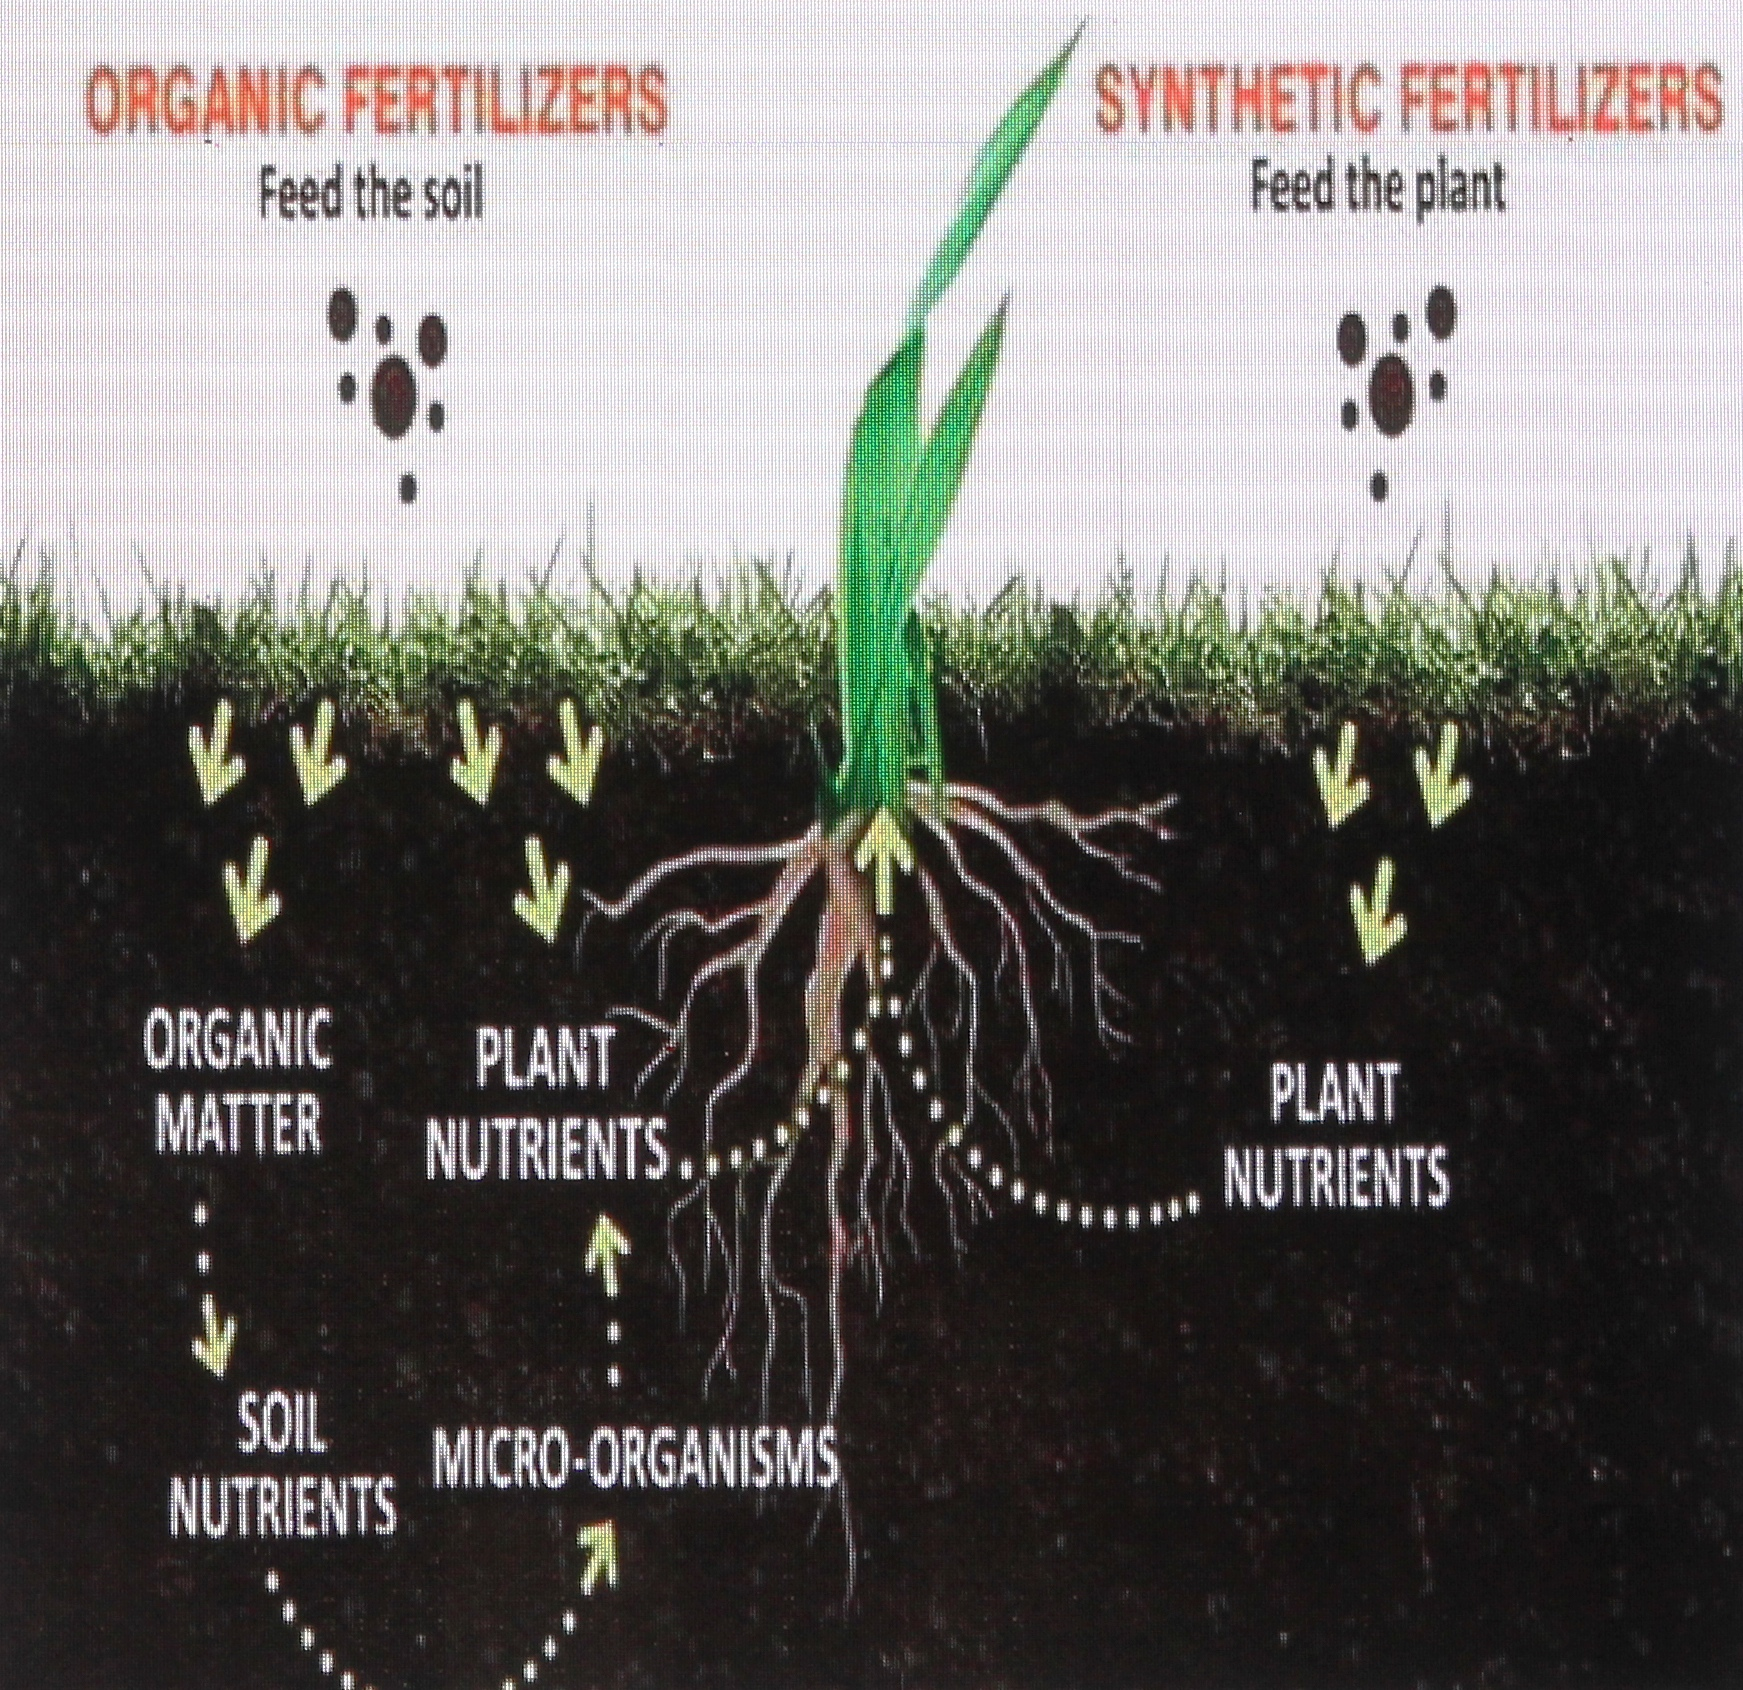 Types of Fertilizers.jpg